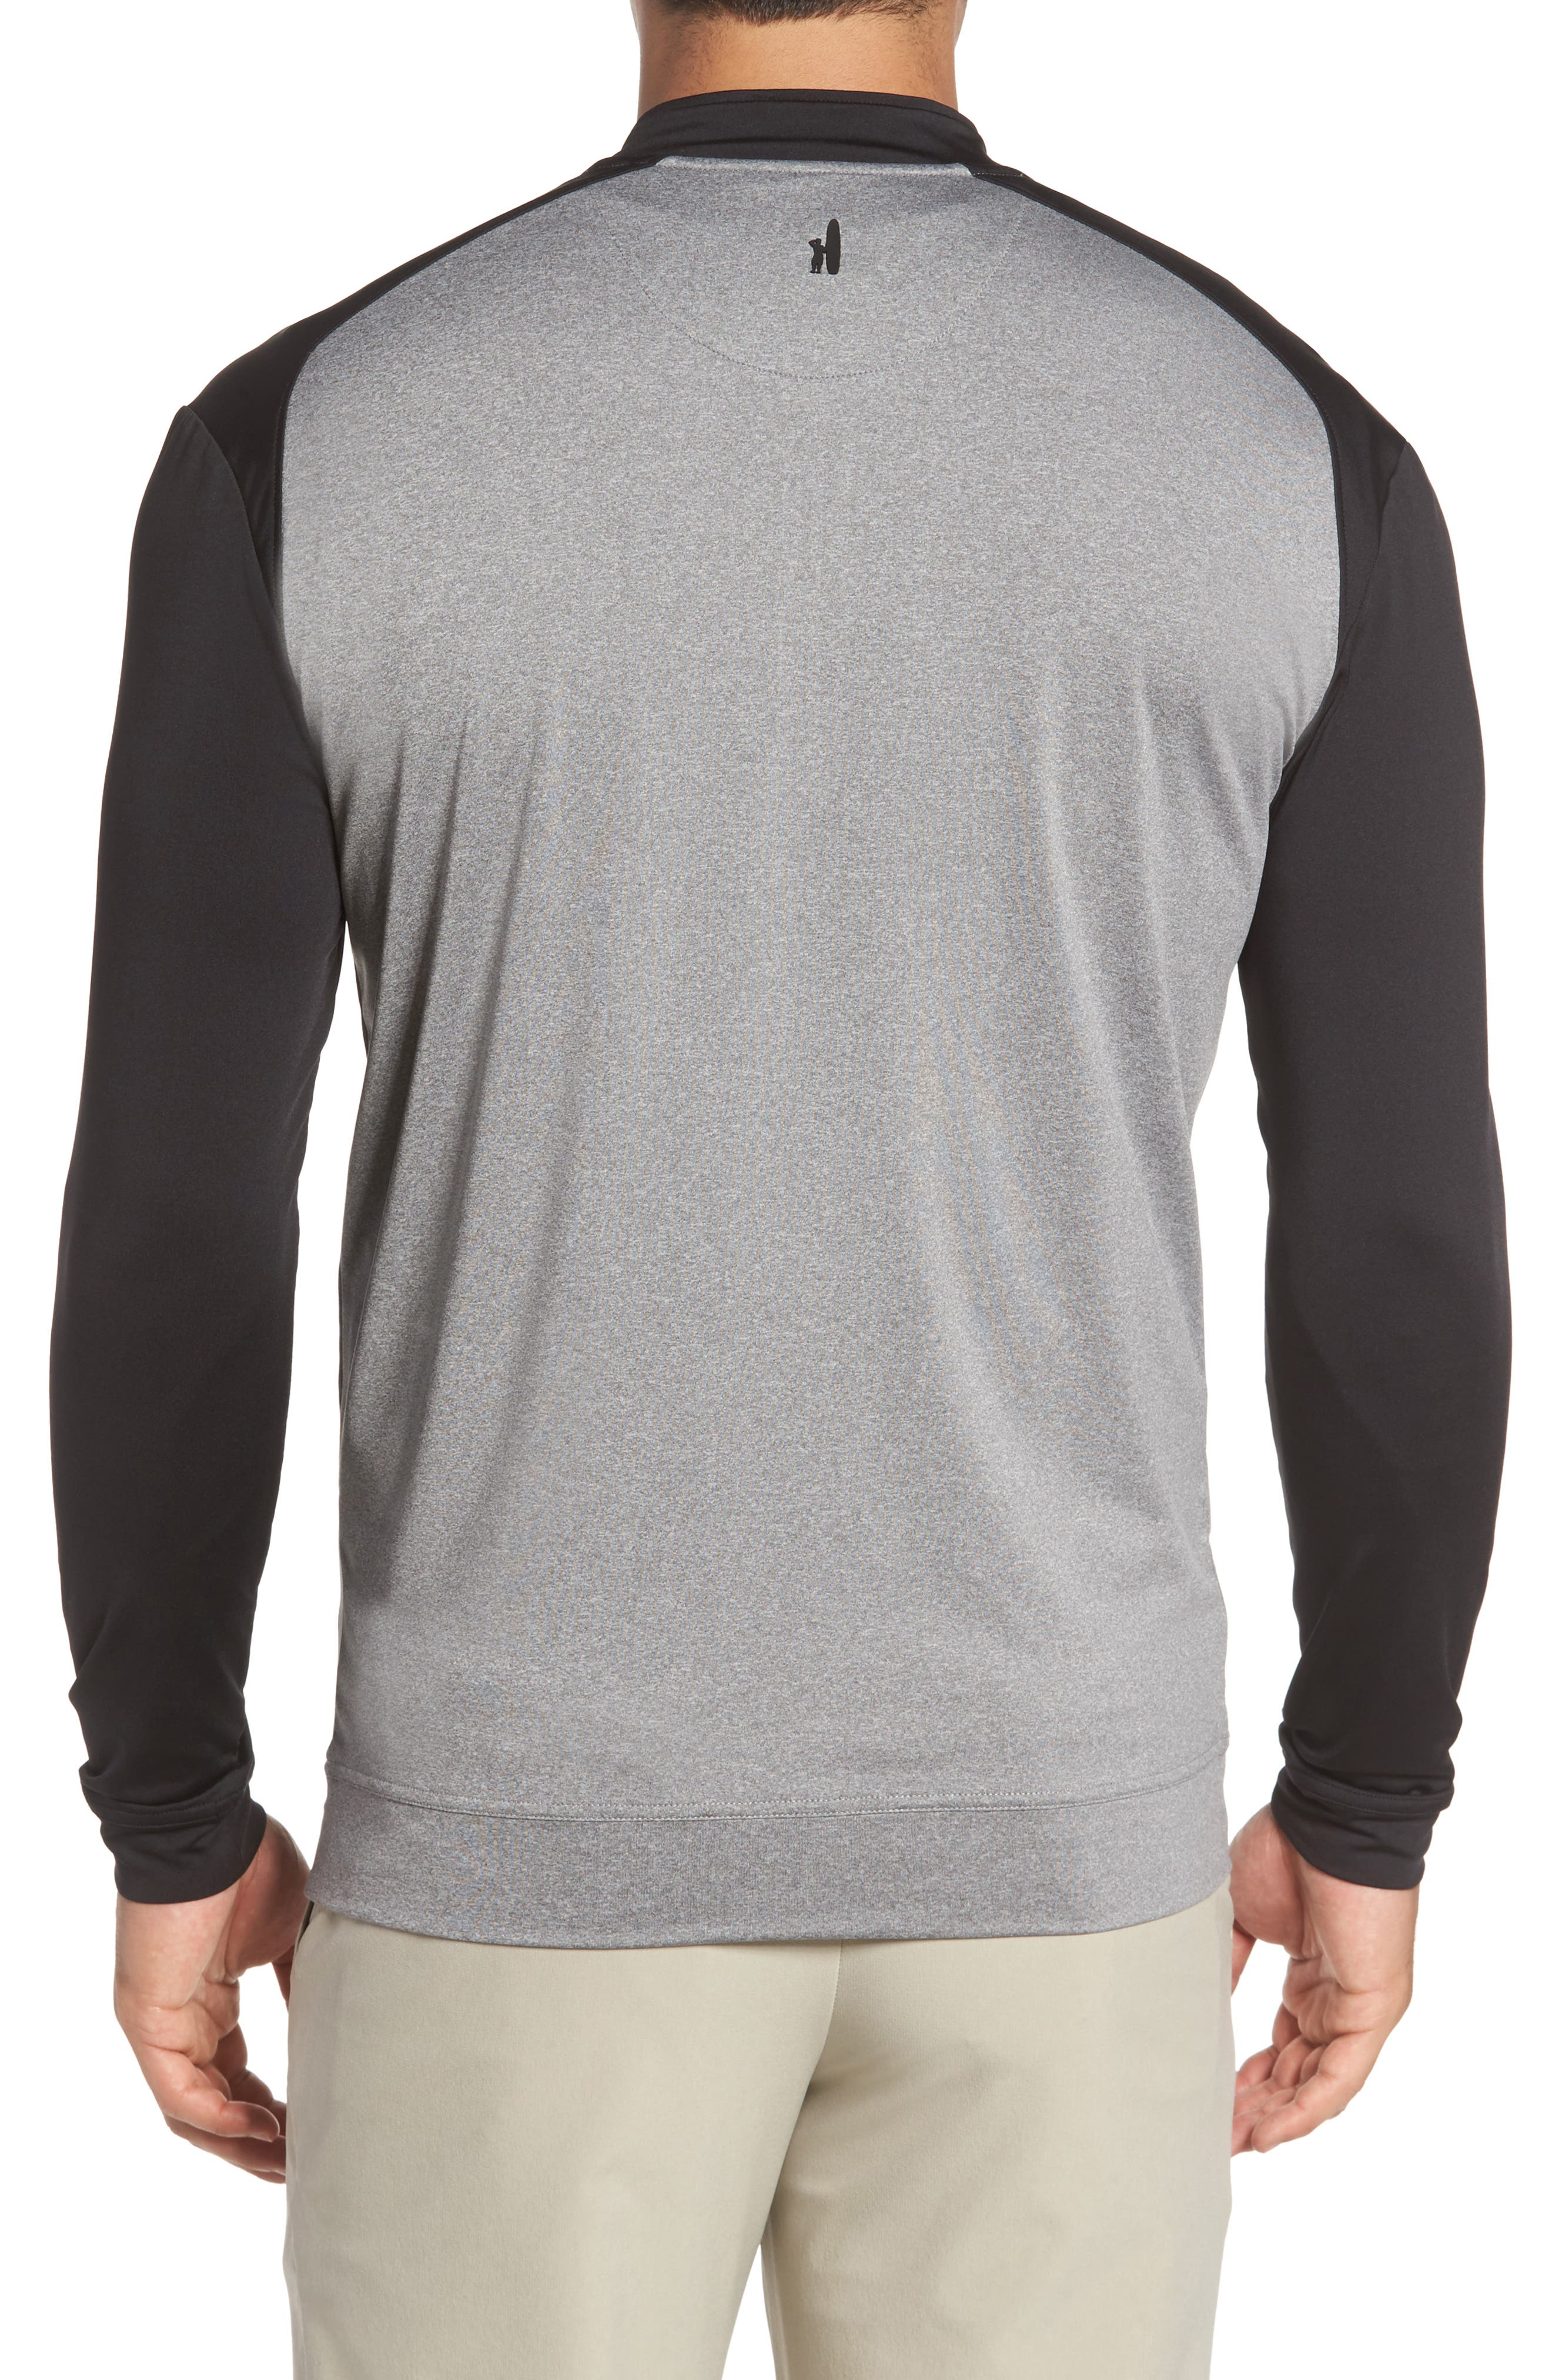 Sway Classic Fit Zip Raglan Pullover,                             Alternate thumbnail 2, color,                             001